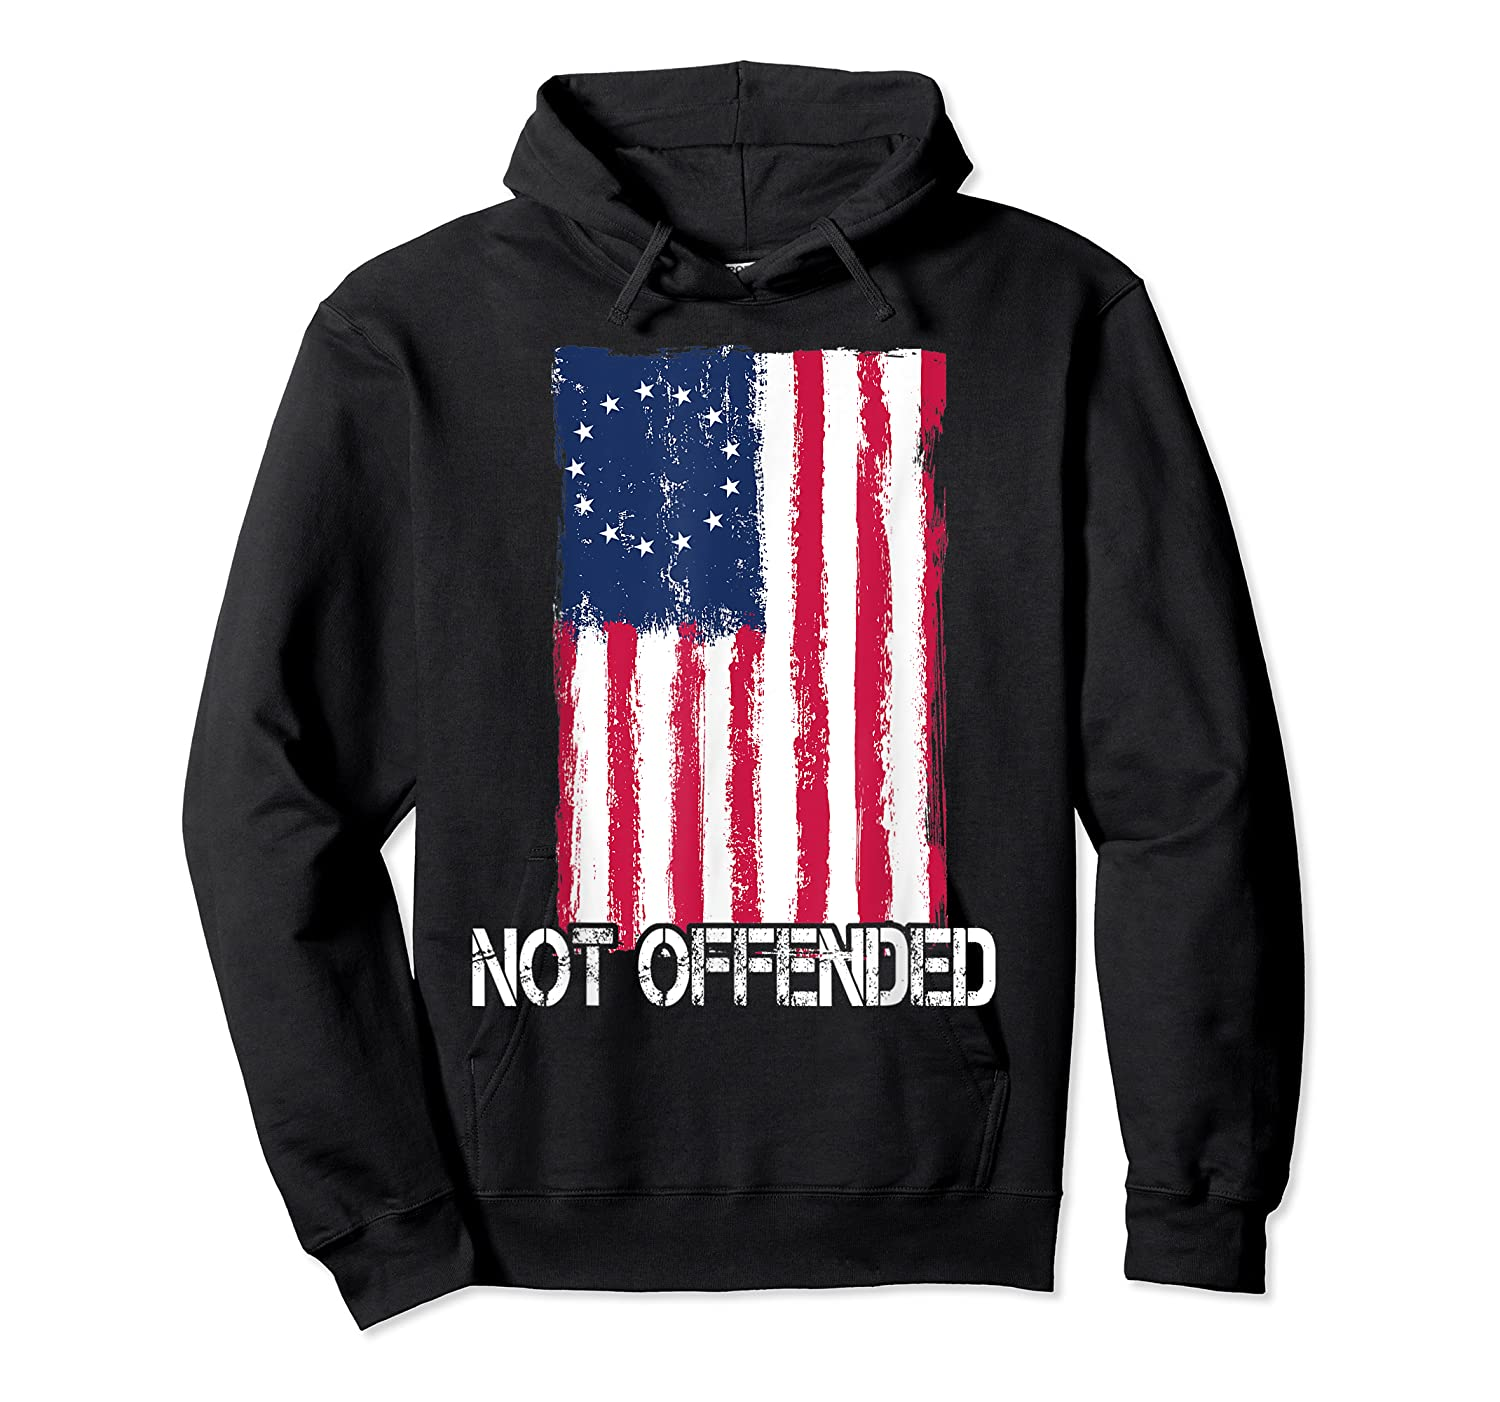 Betsy Ross American Flag Tshirt With 13 Stars For Protesters Unisex Pullover Hoodie